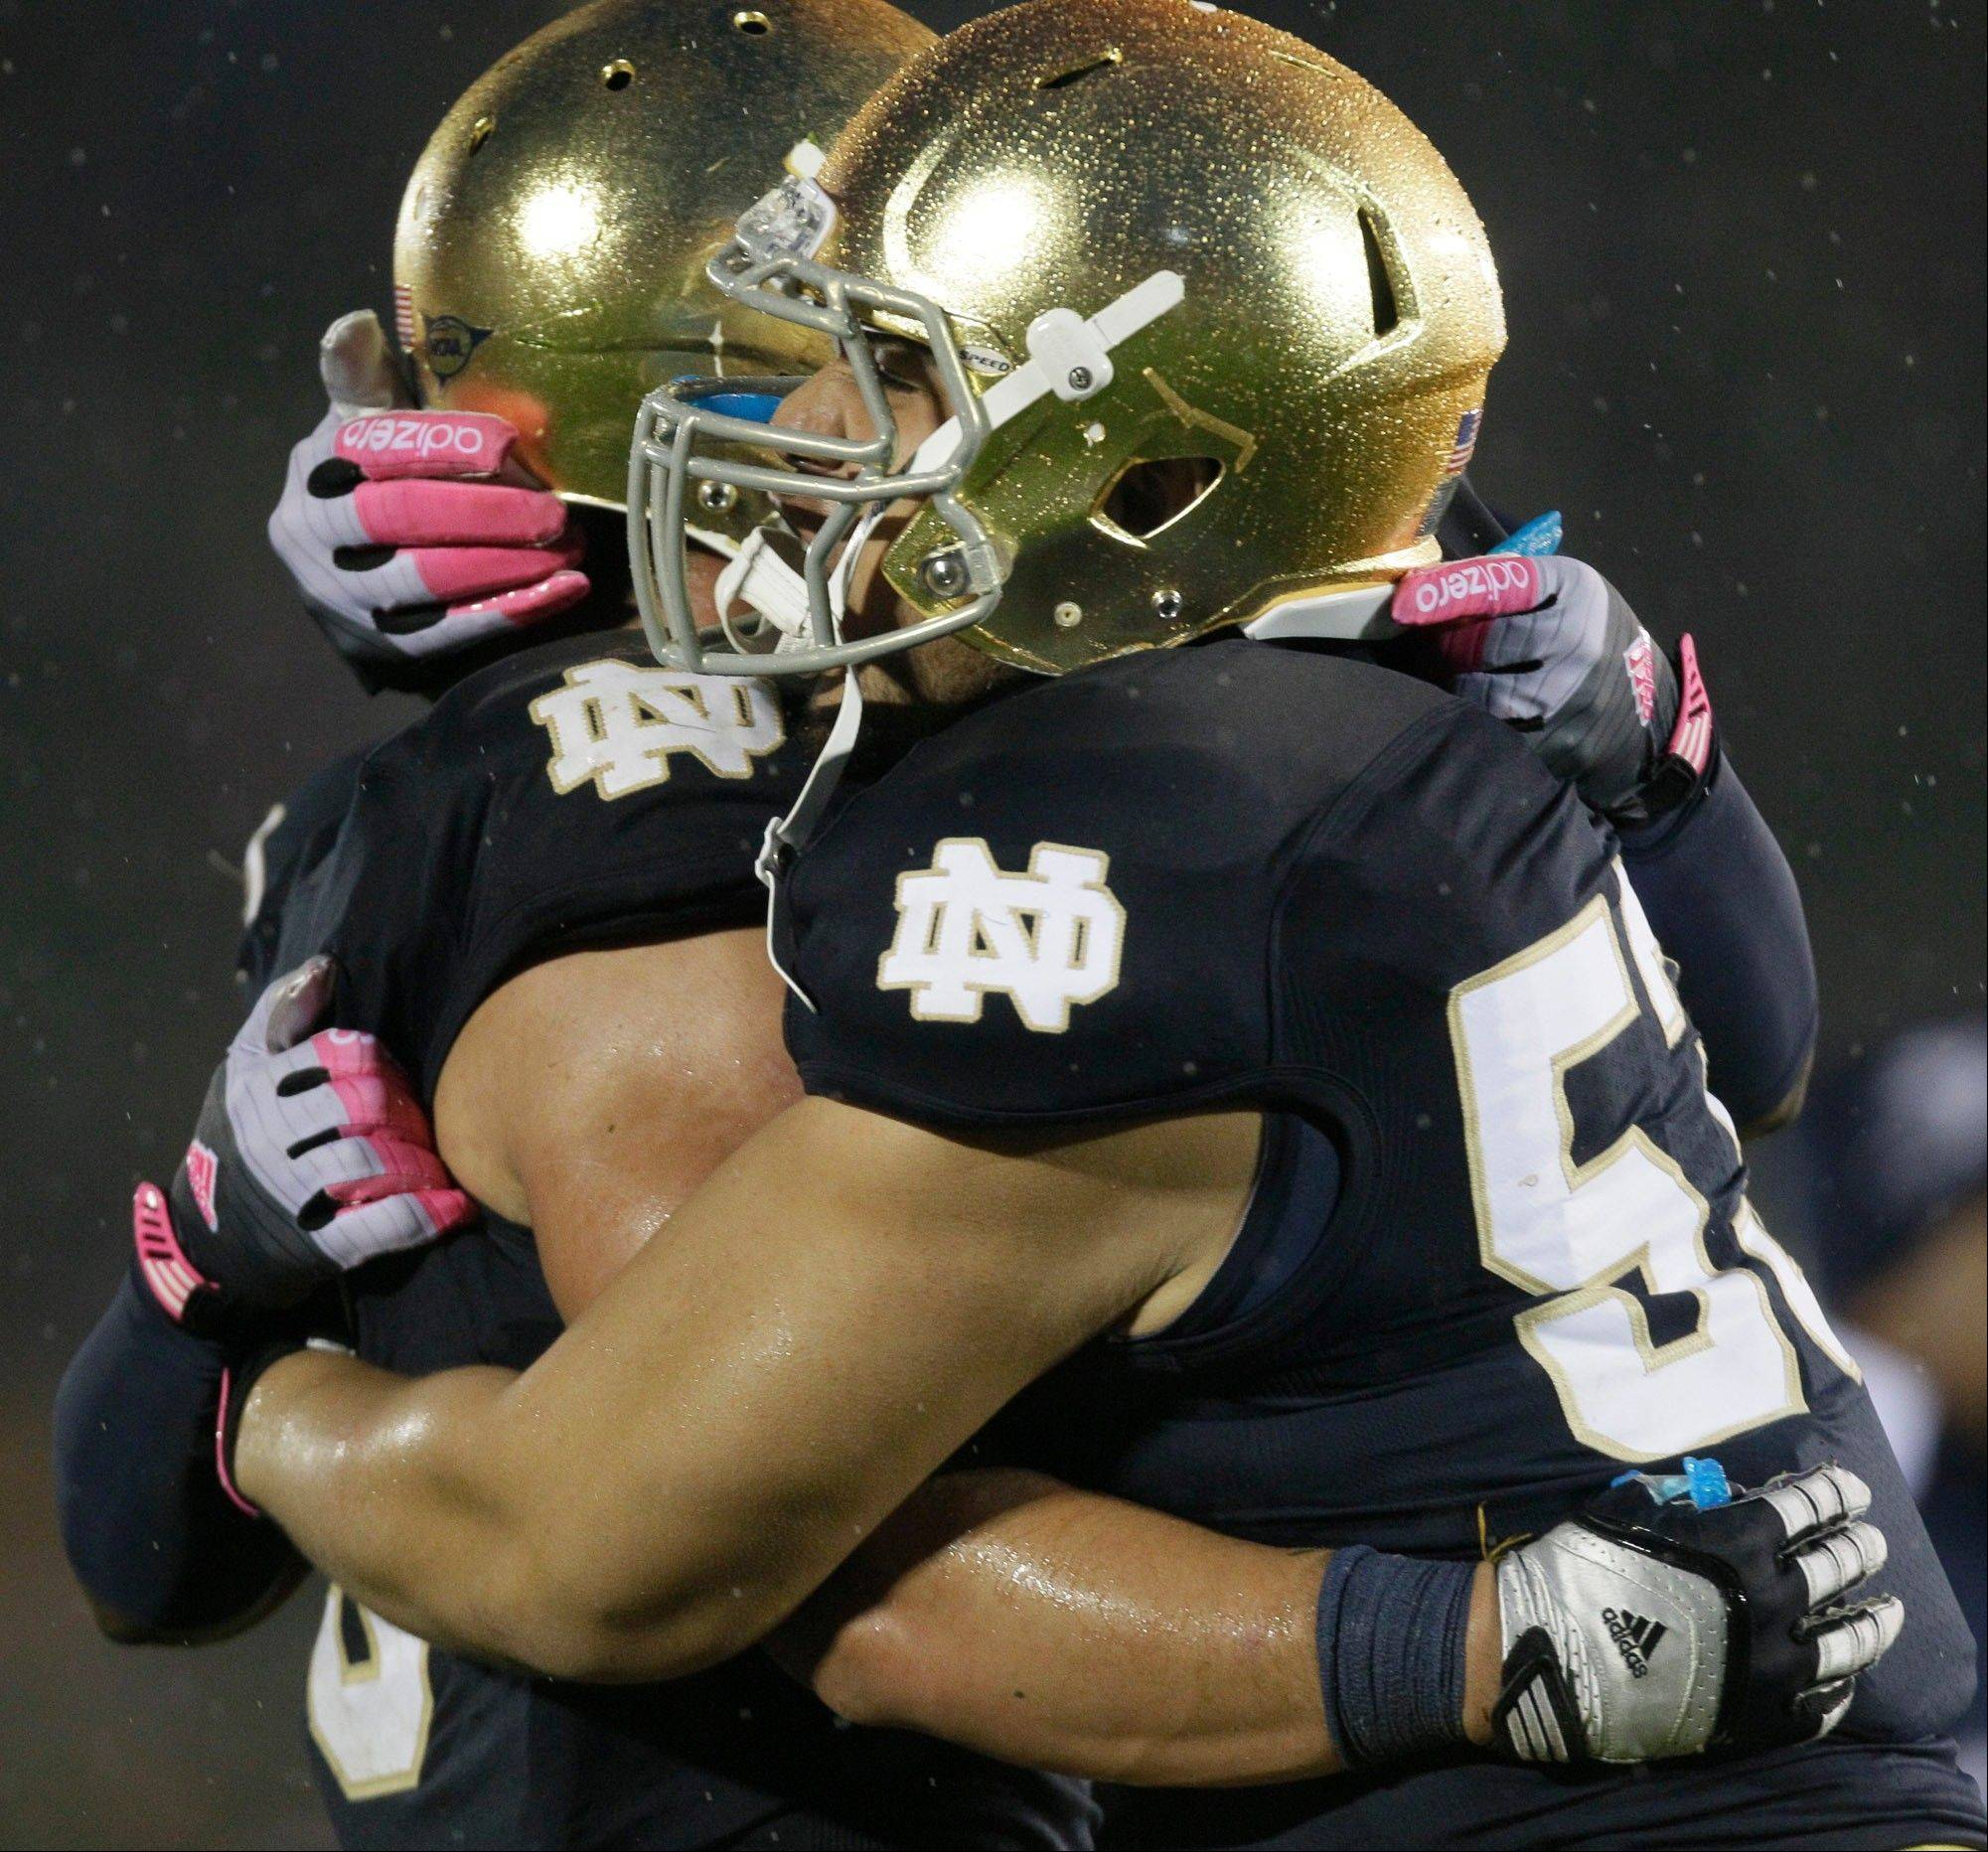 Notre Dame linebacker Manti Te'o, left, celebrates with defensive end Justin Utupo (53) after Notre Dame defeated Stanford 20-13 in overtime Saturday in South Bend, Ind.